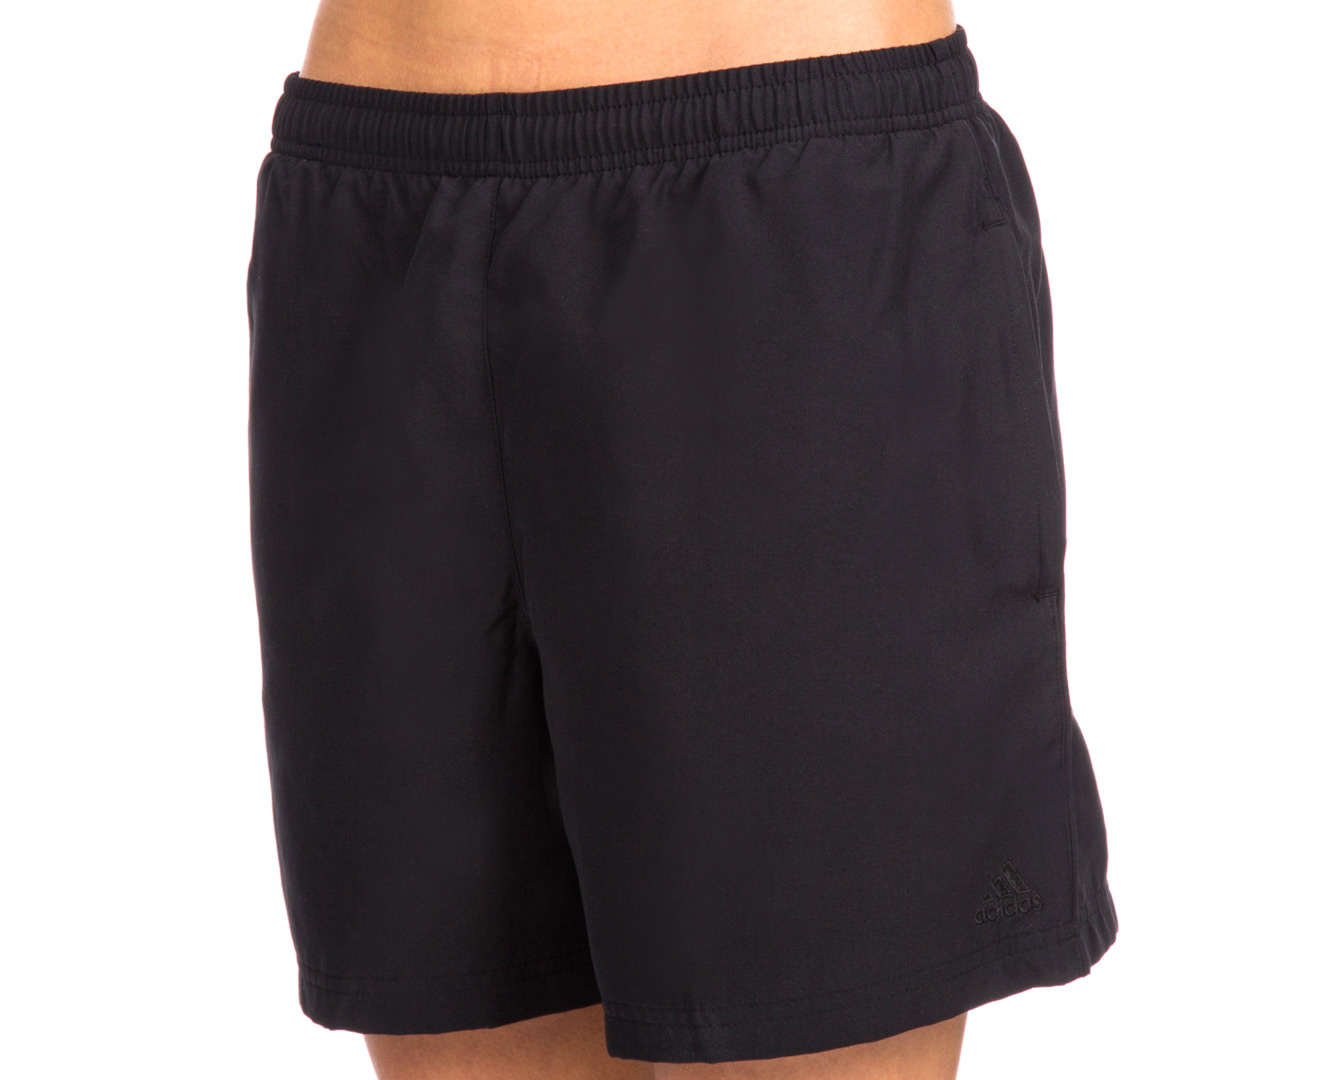 scoopon shopping adidas women s serenity shorts   black